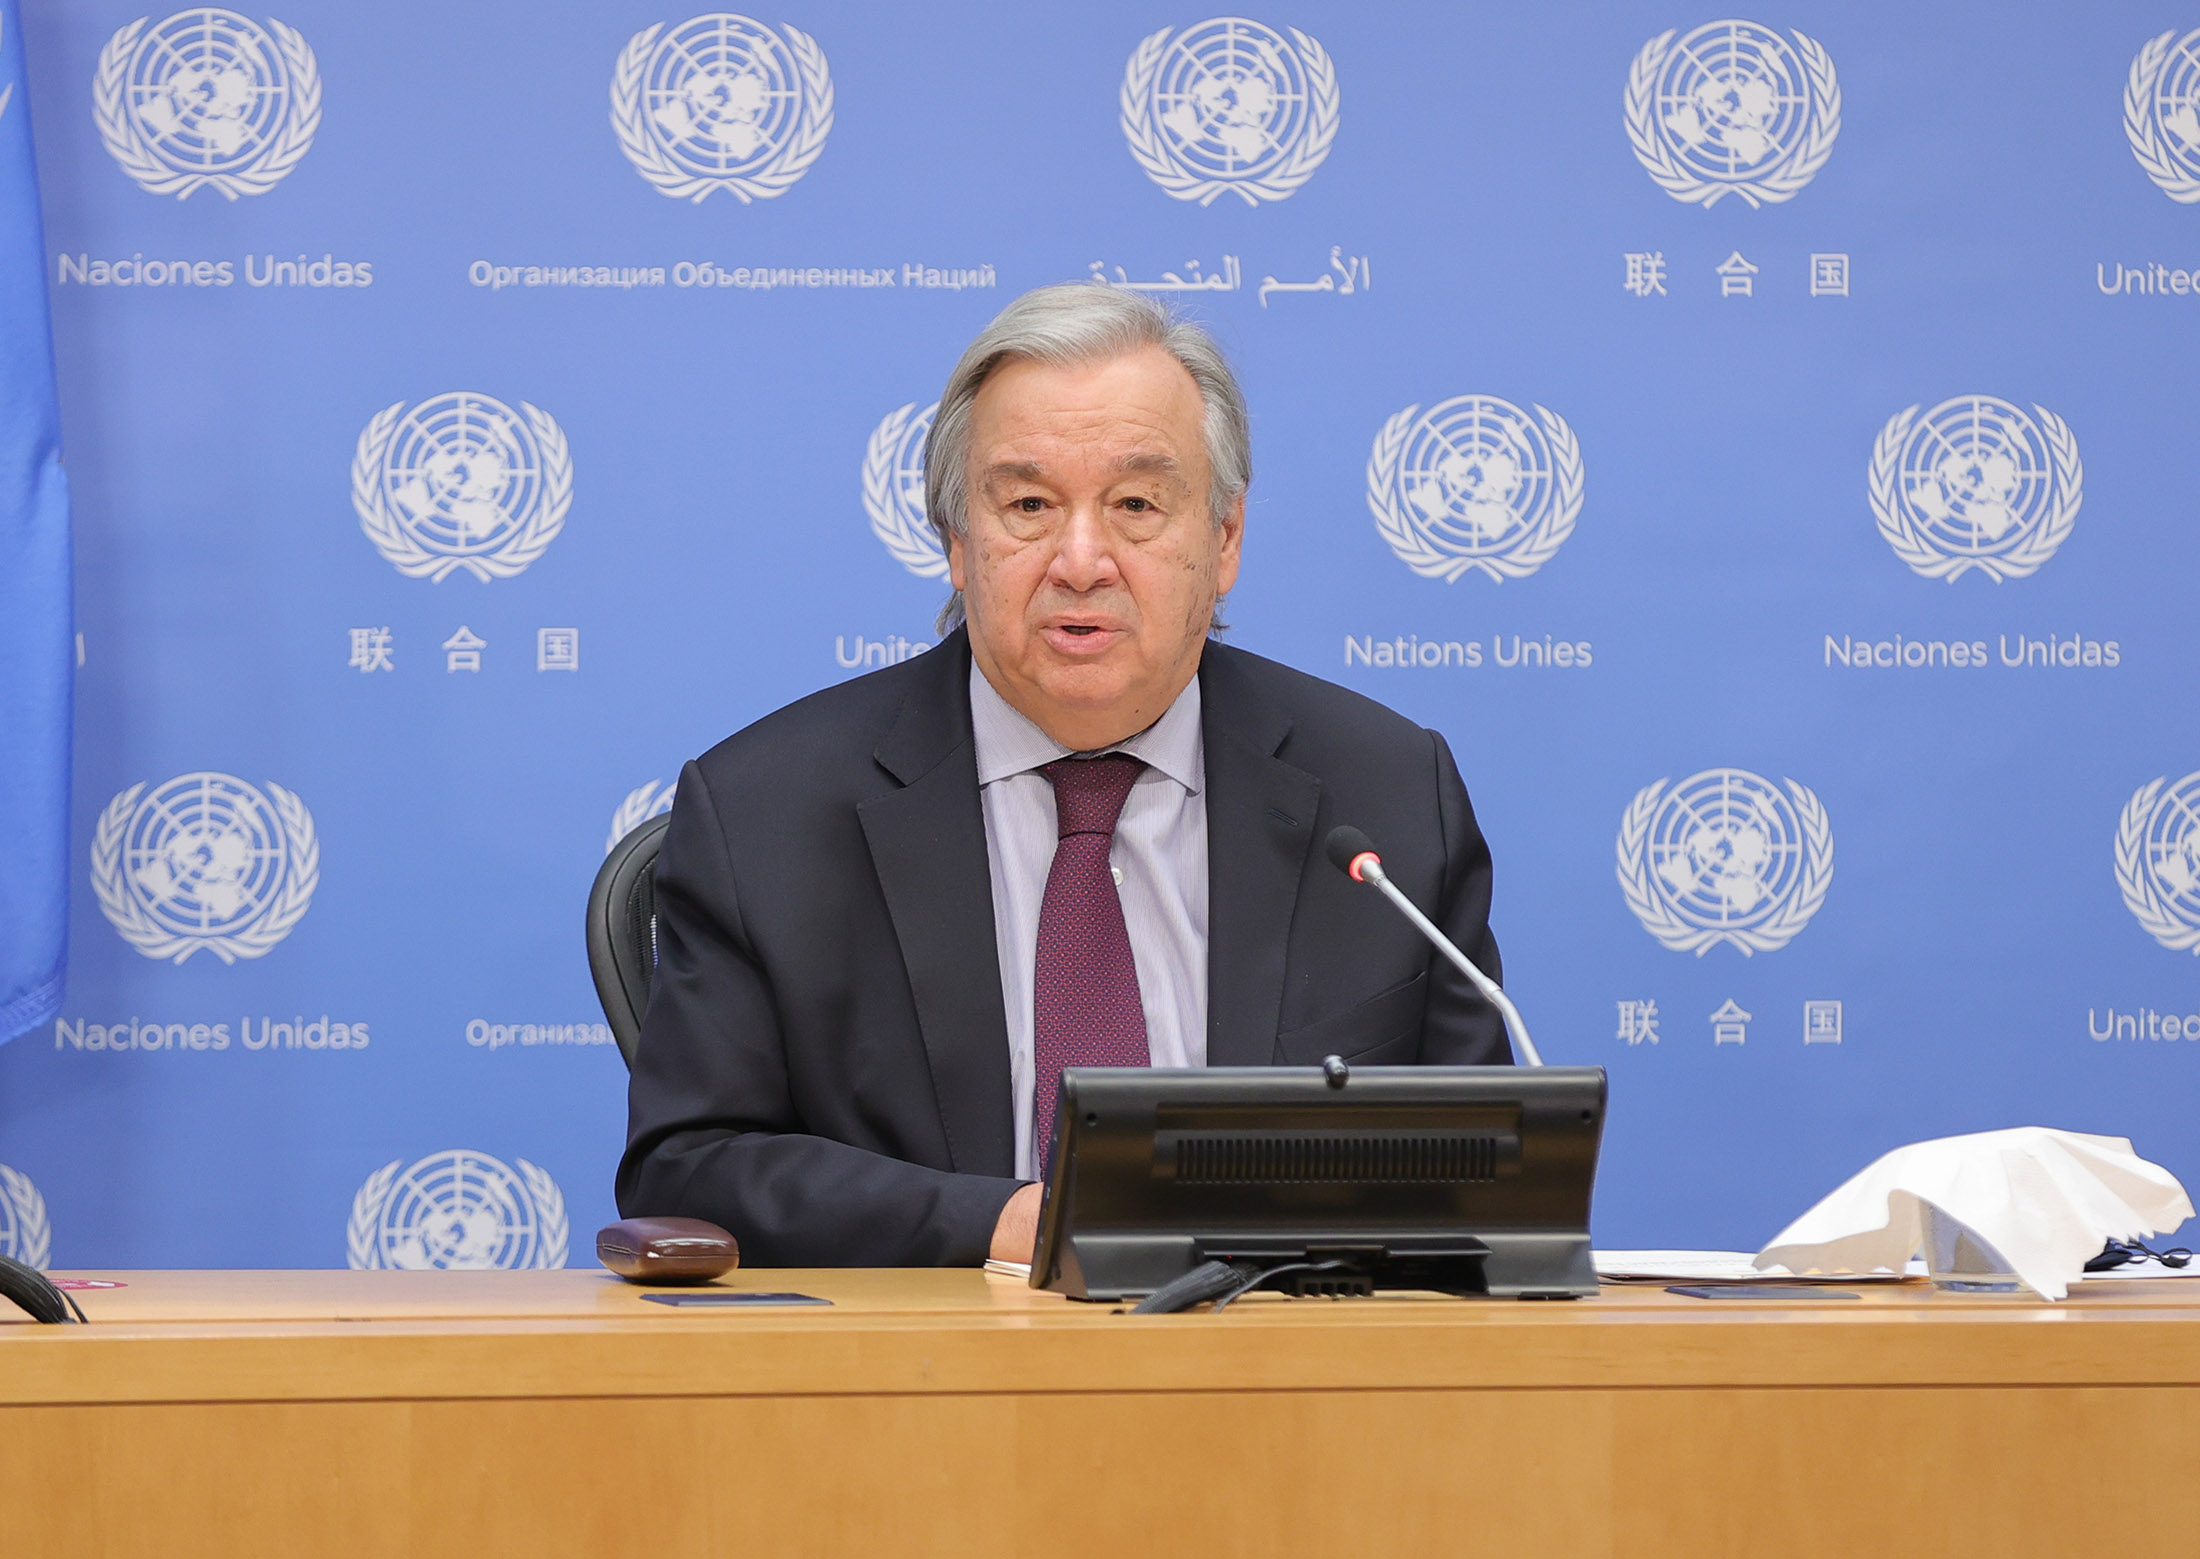 Secretary-General Antonio Guterres briefs reporters during a news conference at the United Nations in Manhattan, New York, on November 20.